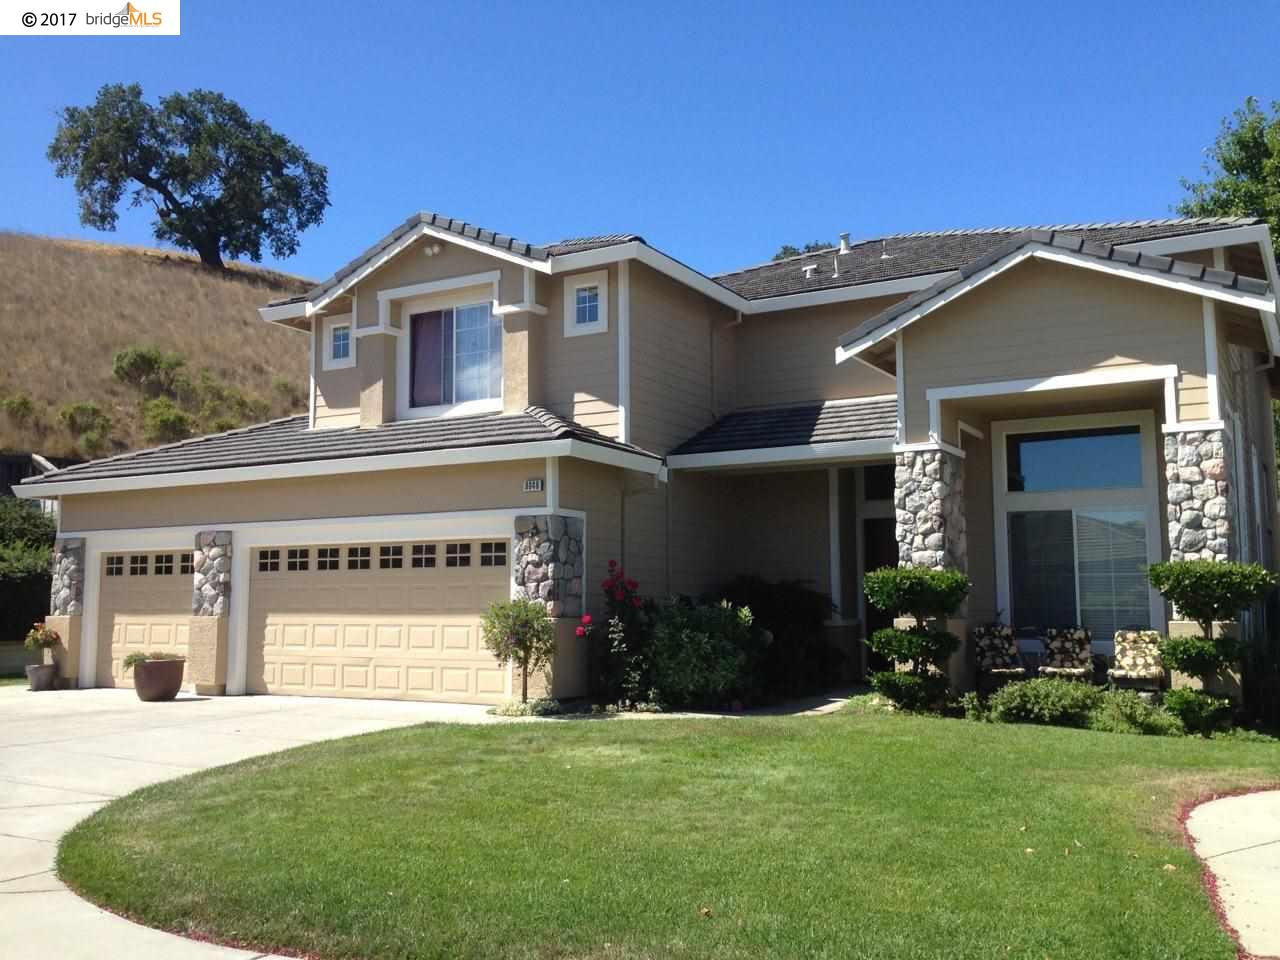 Additional photo for property listing at 8049 Kelok Way  Clayton, Kalifornien 94517 Vereinigte Staaten